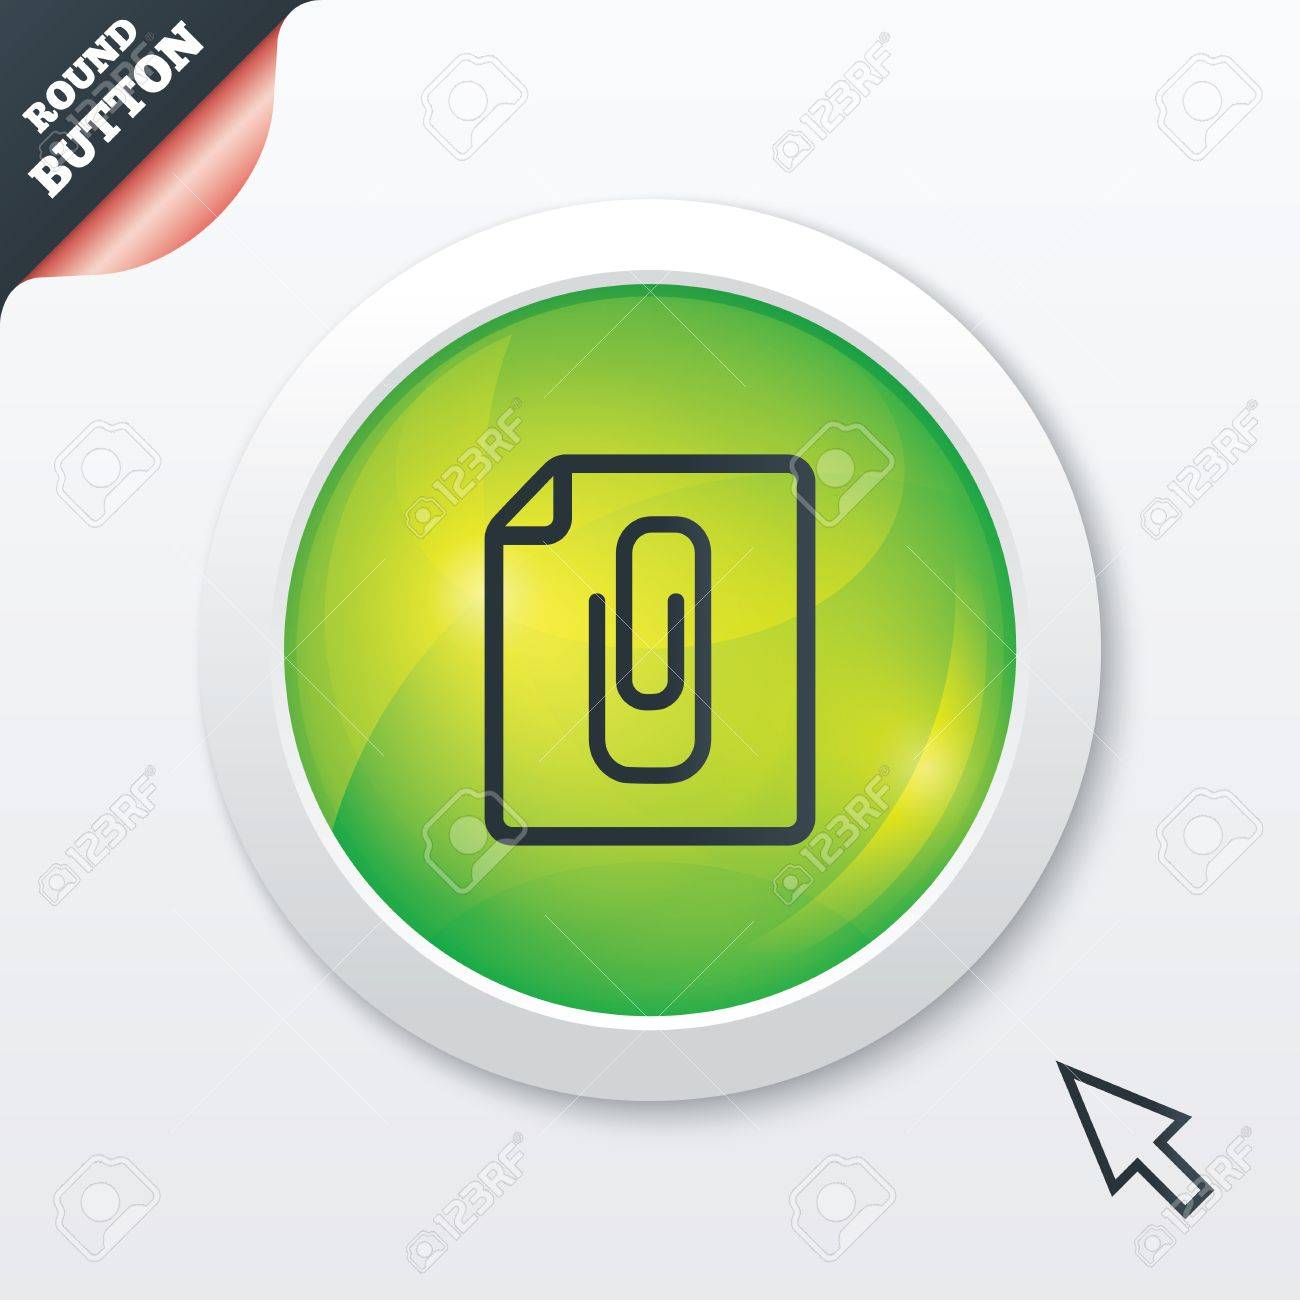 File annex icon. Paper clip symbol. Attach symbol. Green shiny button. Modern UI website button with mouse cursor pointer. Stock Photo - 27279095